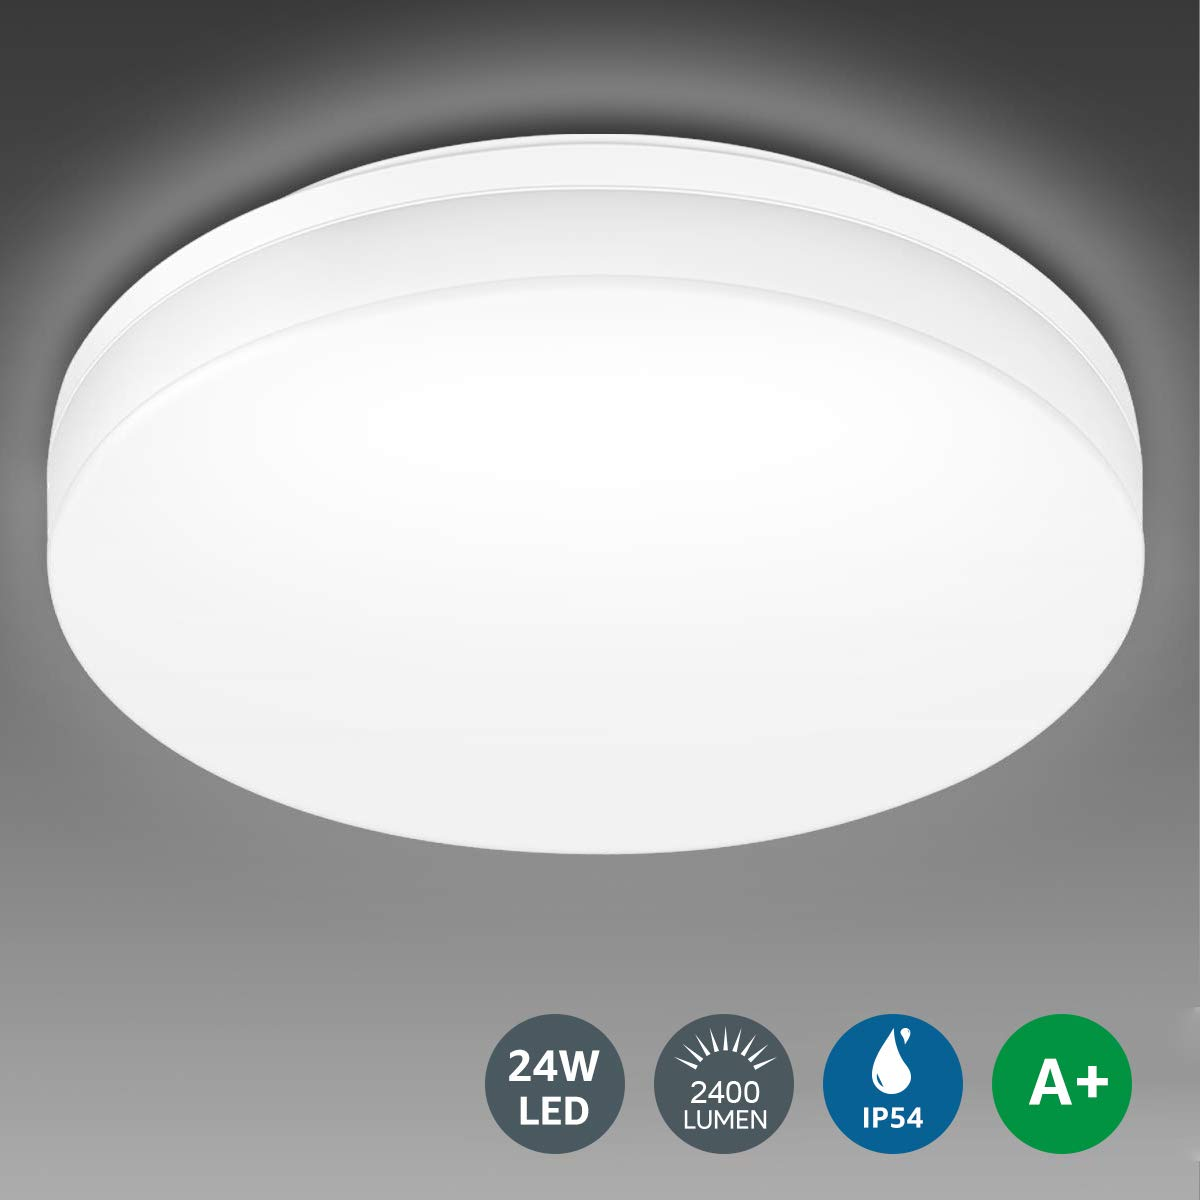 buy popular bf218 4aede LE 24W LED Ceiling Light, IP54 Waterproof, Daylight White 5000K, 2400lm  Bright Flush Ceiling Light for Bathroom, Kitchen, Hallway, Outside Porch  and ...